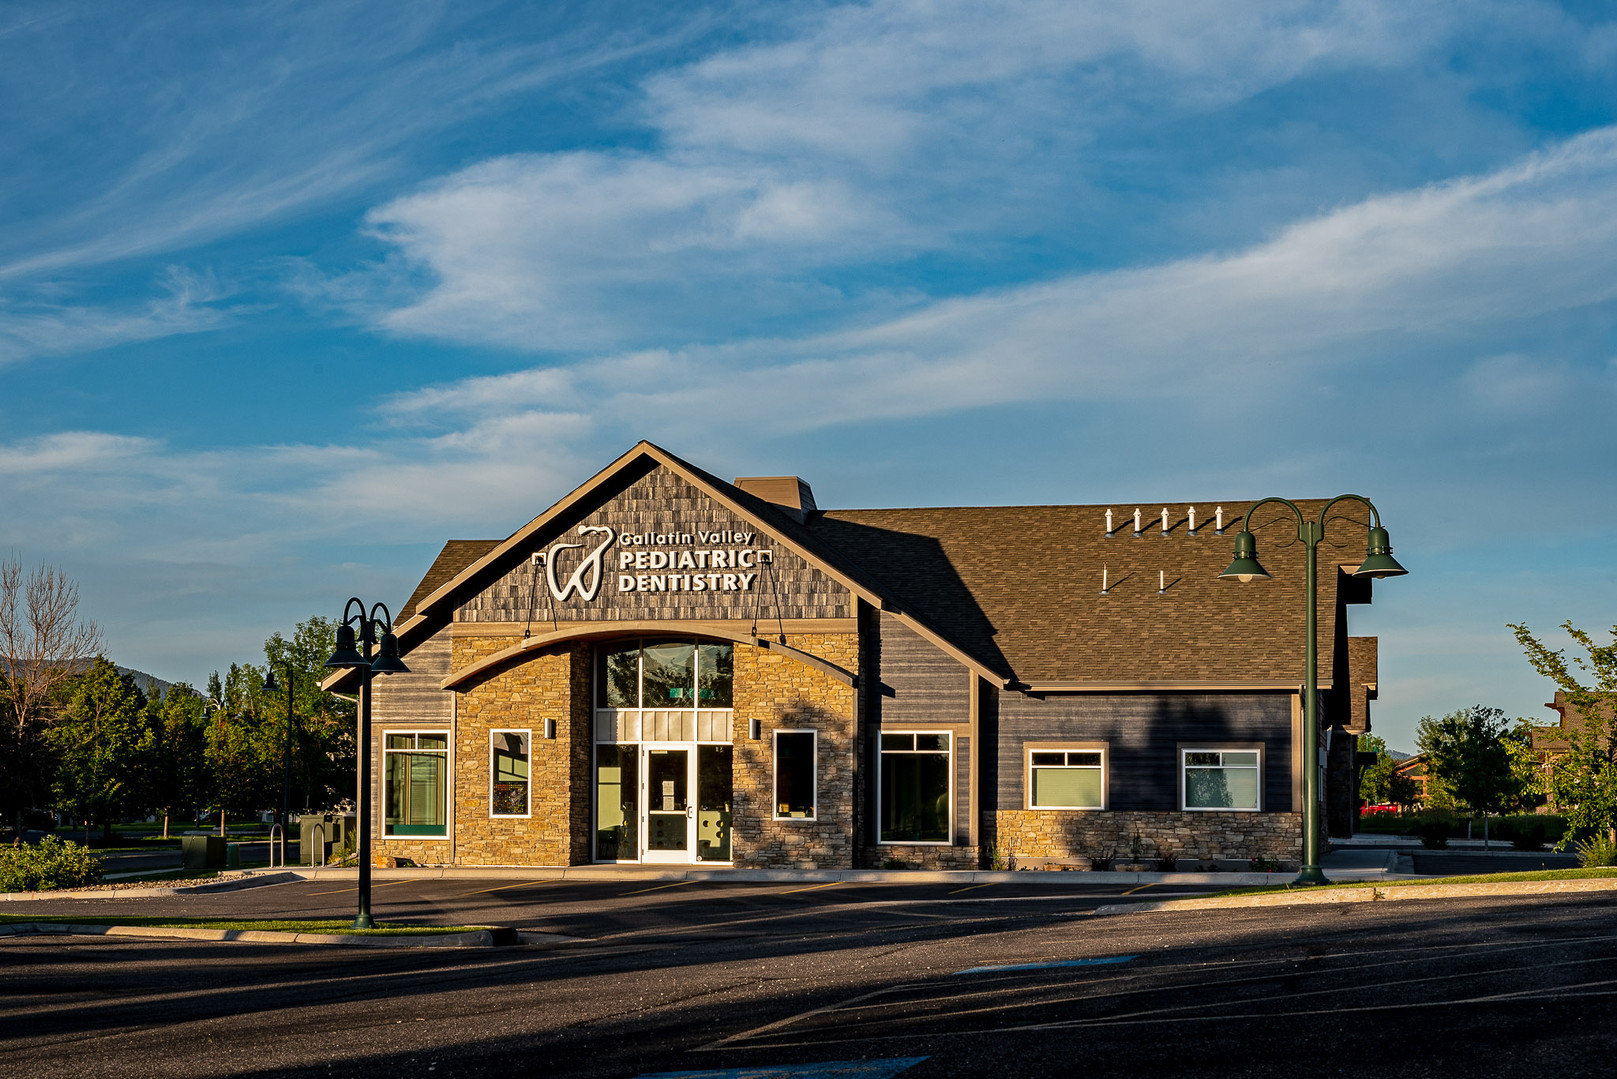 Gallatin Valley Pediatric Dentistry